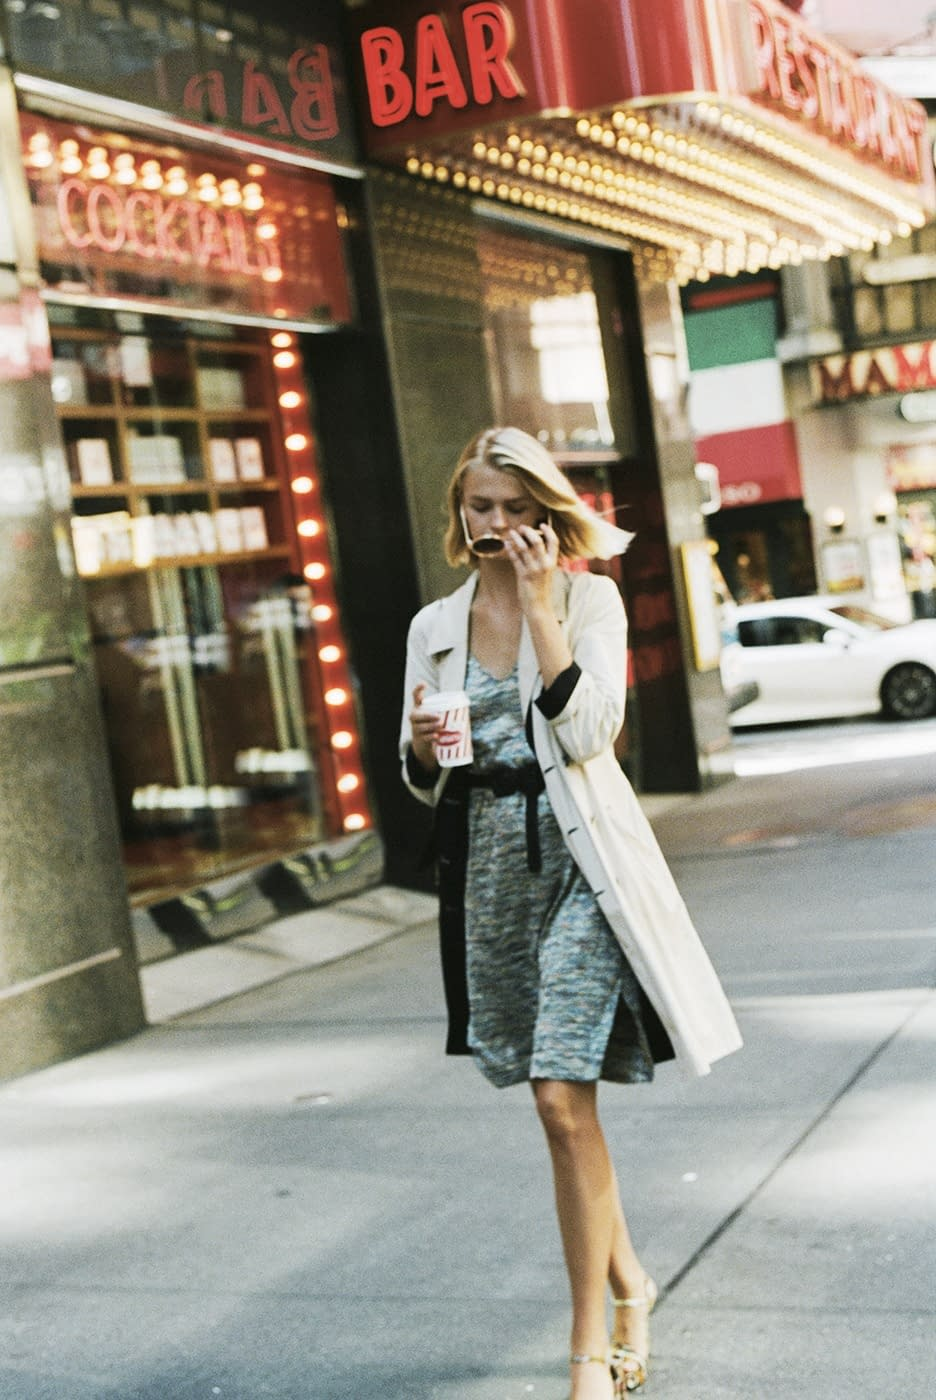 KYLIE NEW YORK BY ENRIC GALCERAN - PHOTO 25